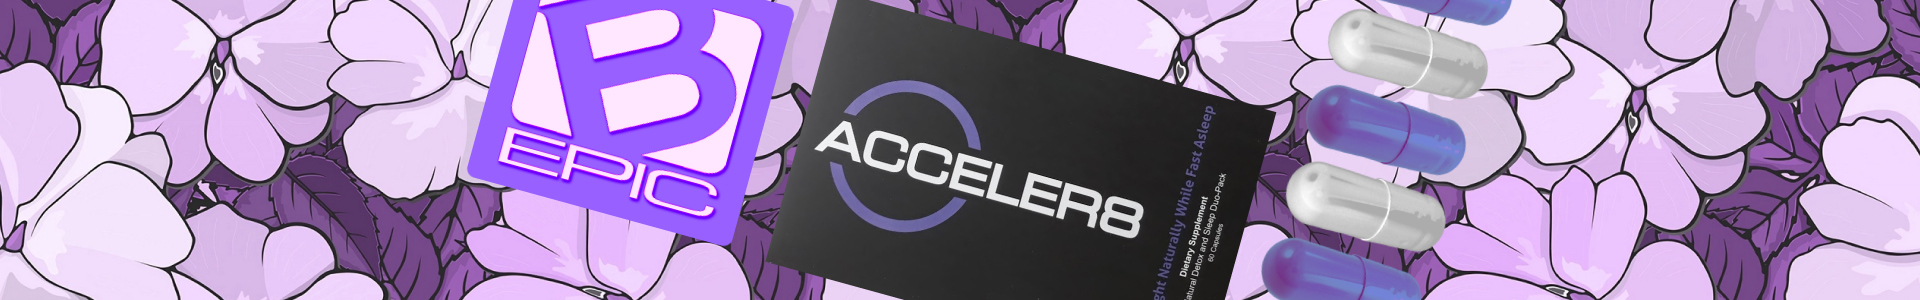 Acceler8 by Bepic supplement